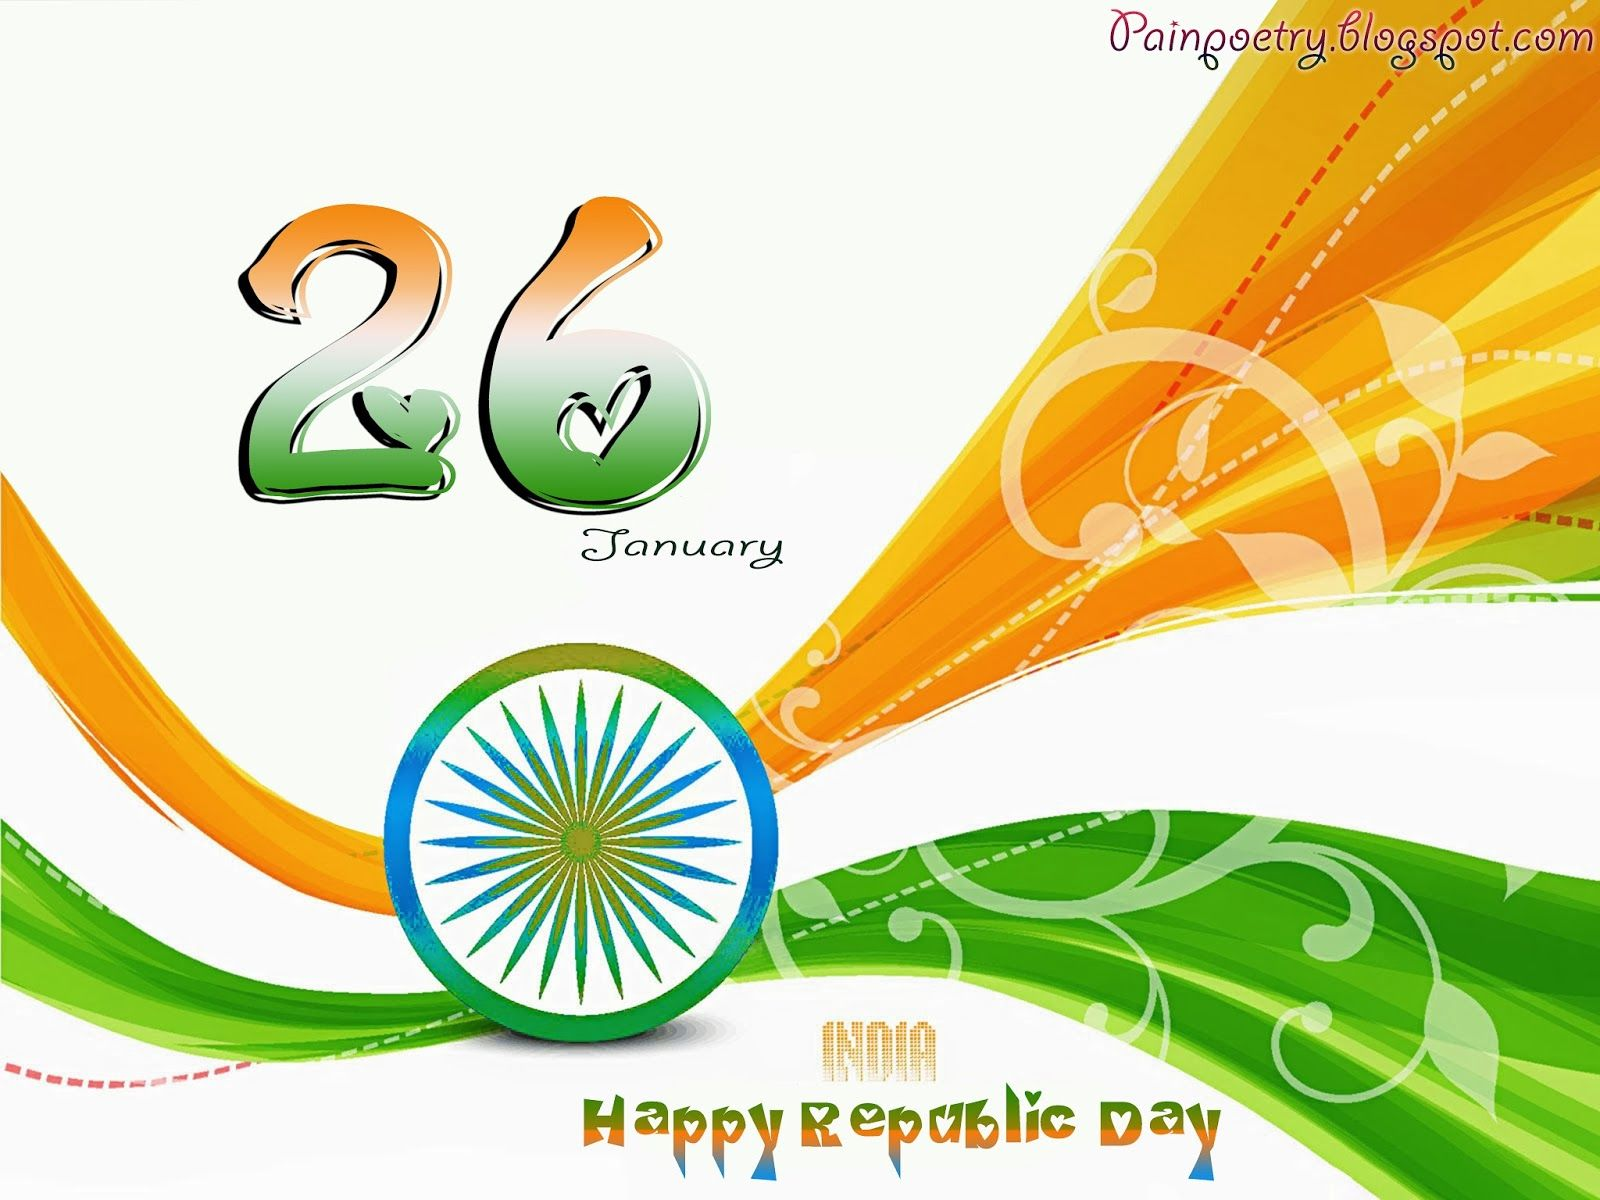 Worlds Best Poetry Republic Day Greetings Recipes To Cook